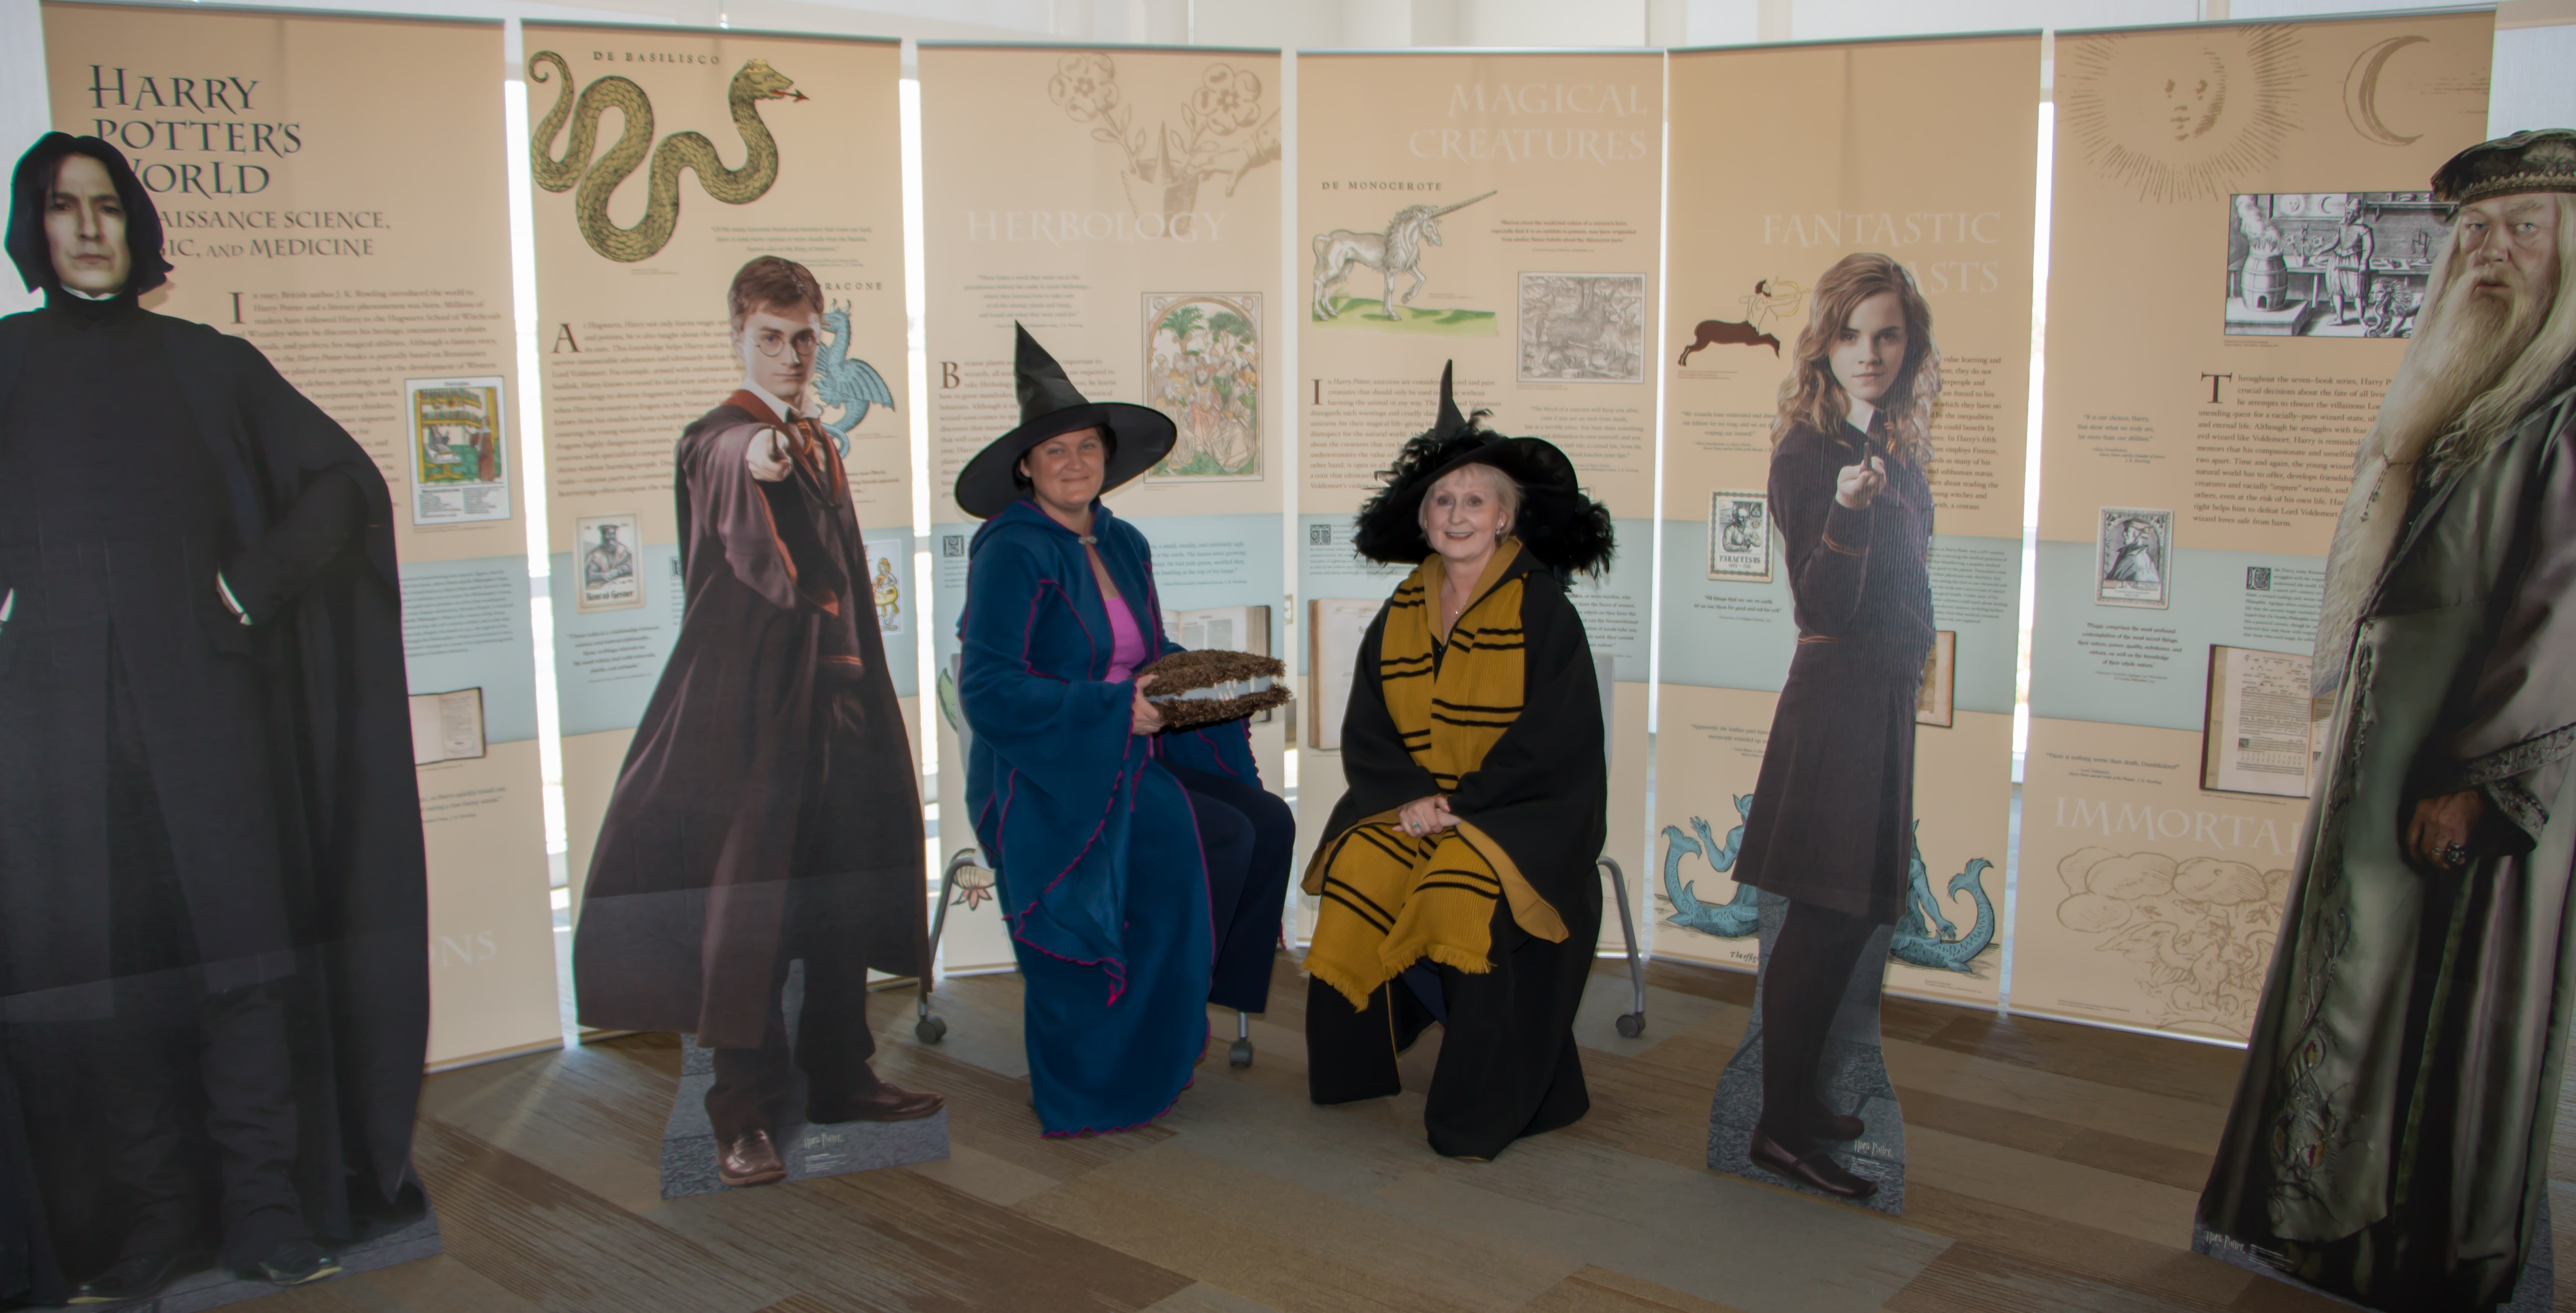 Harry Potter Display Burrell College Of Osteopathic Medicine Health Sciences